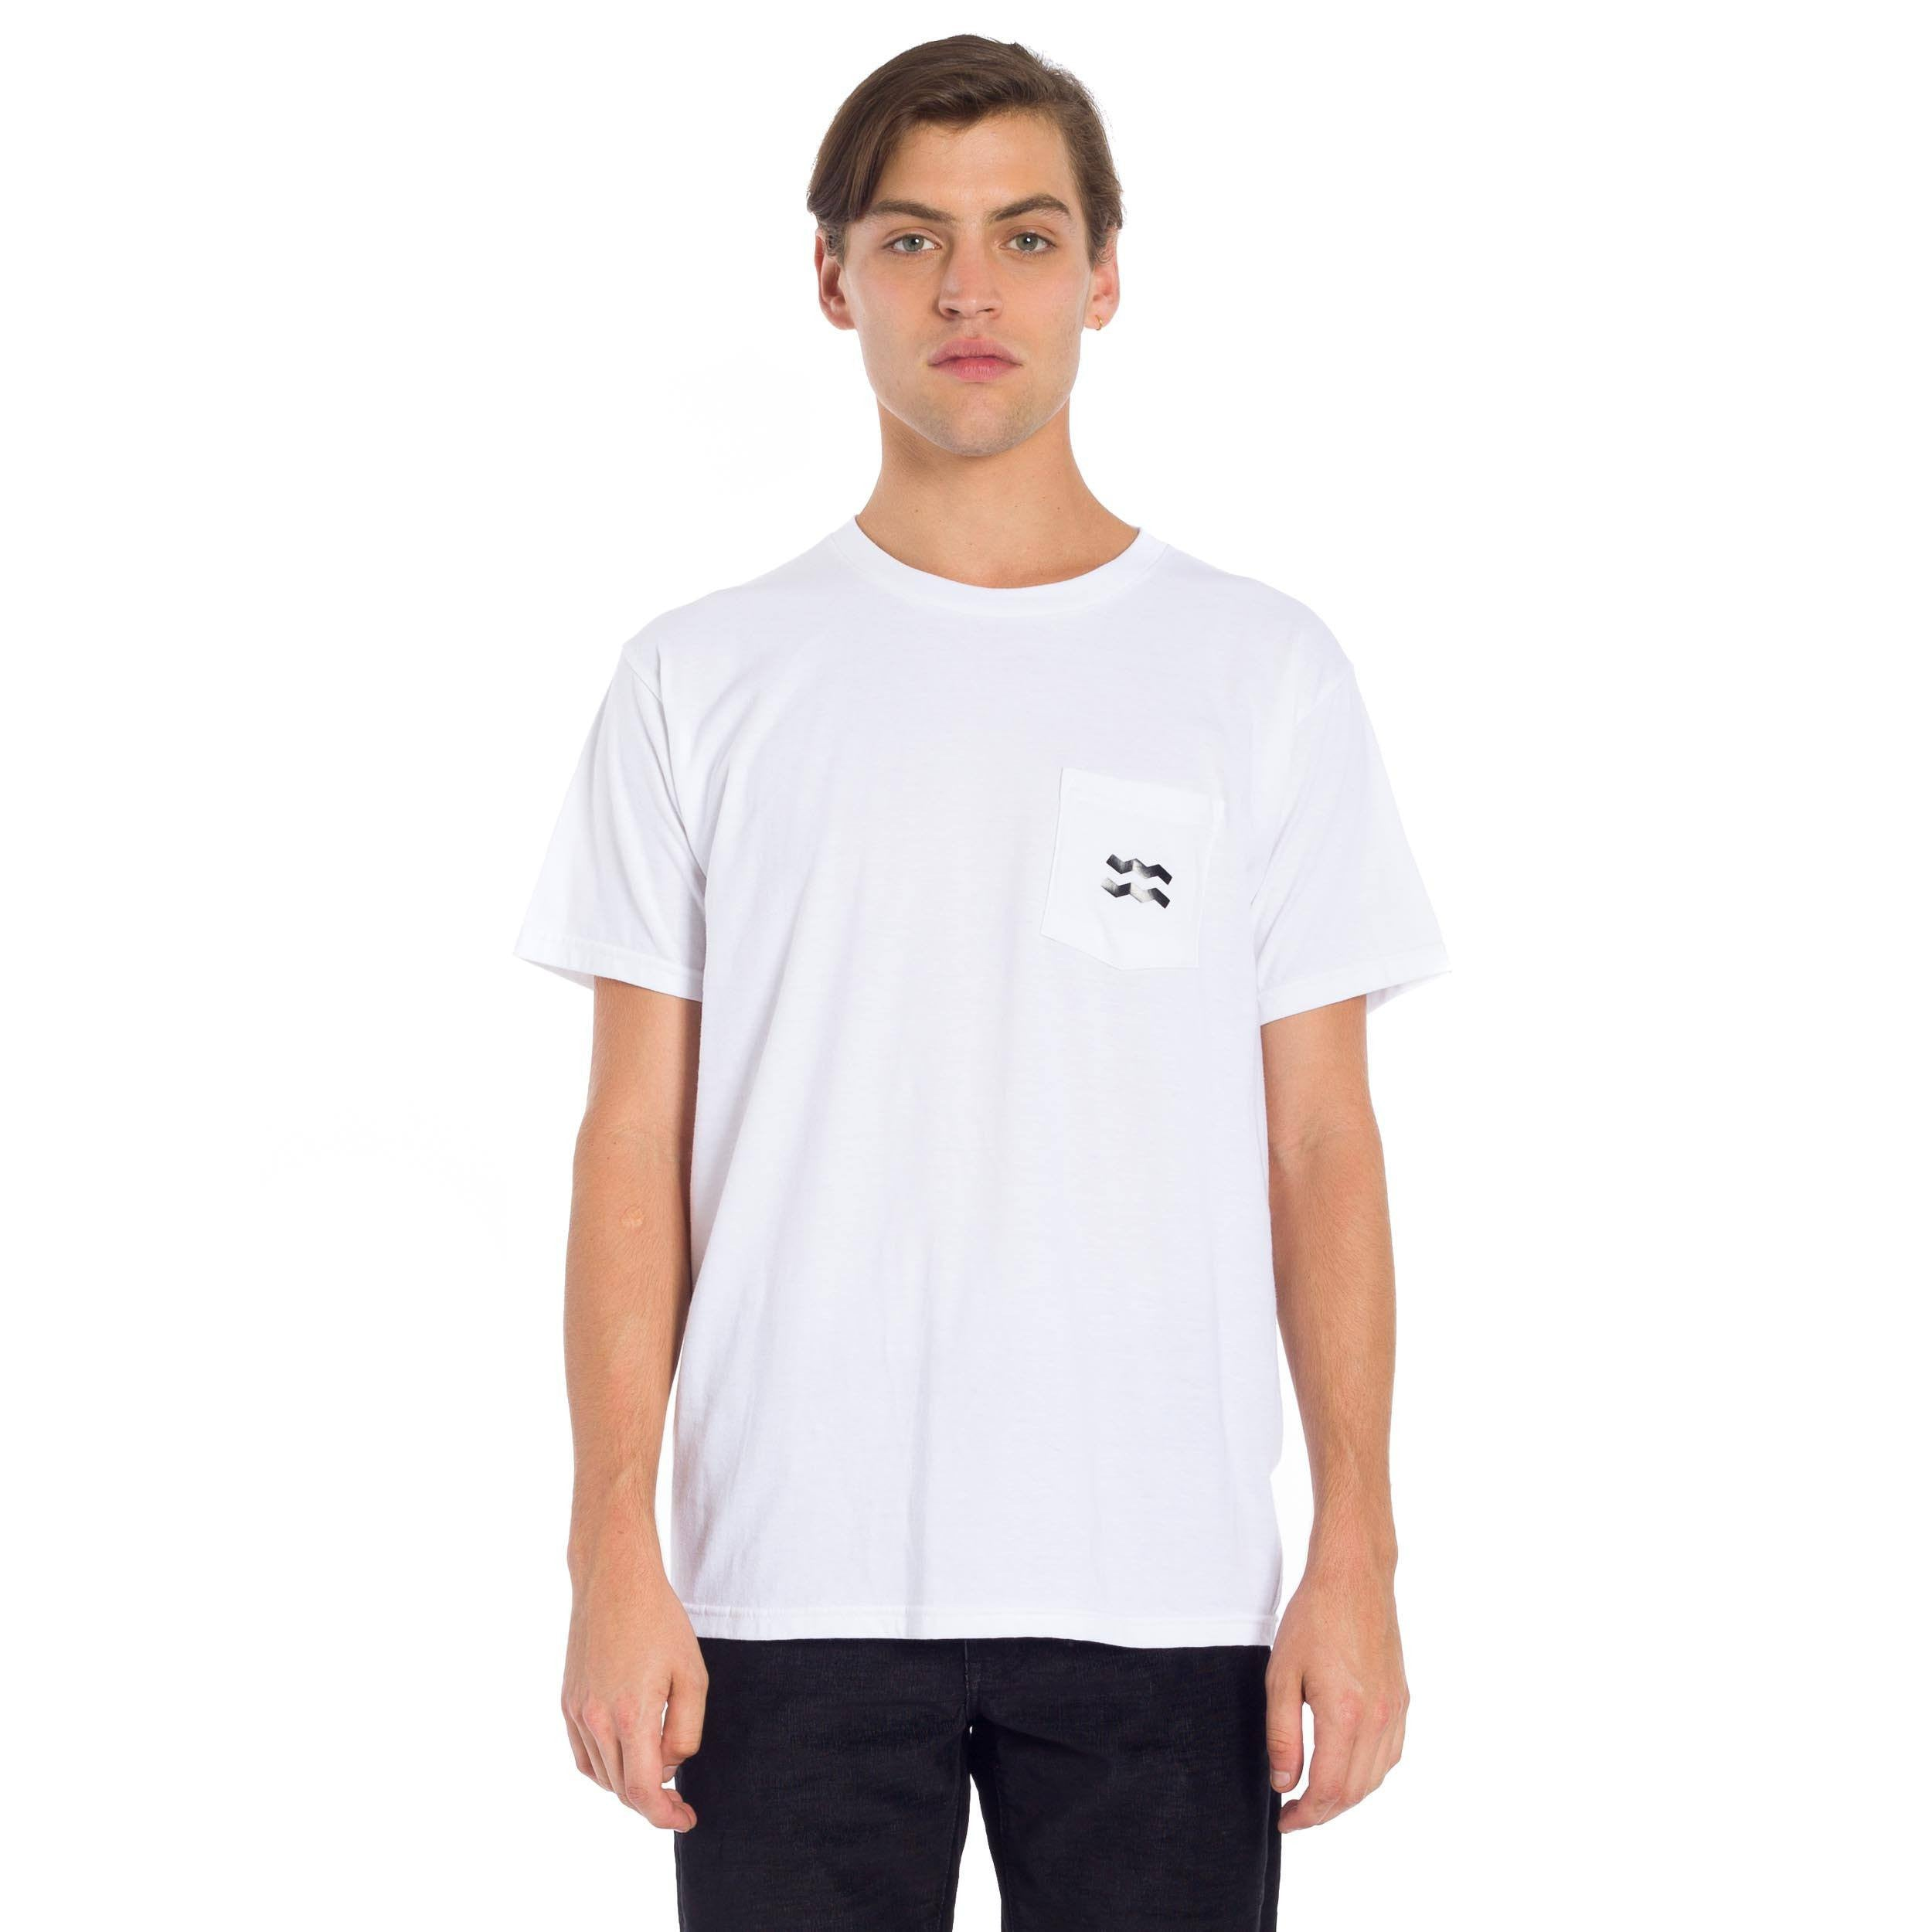 French Floral Pocket T-Shirt - White